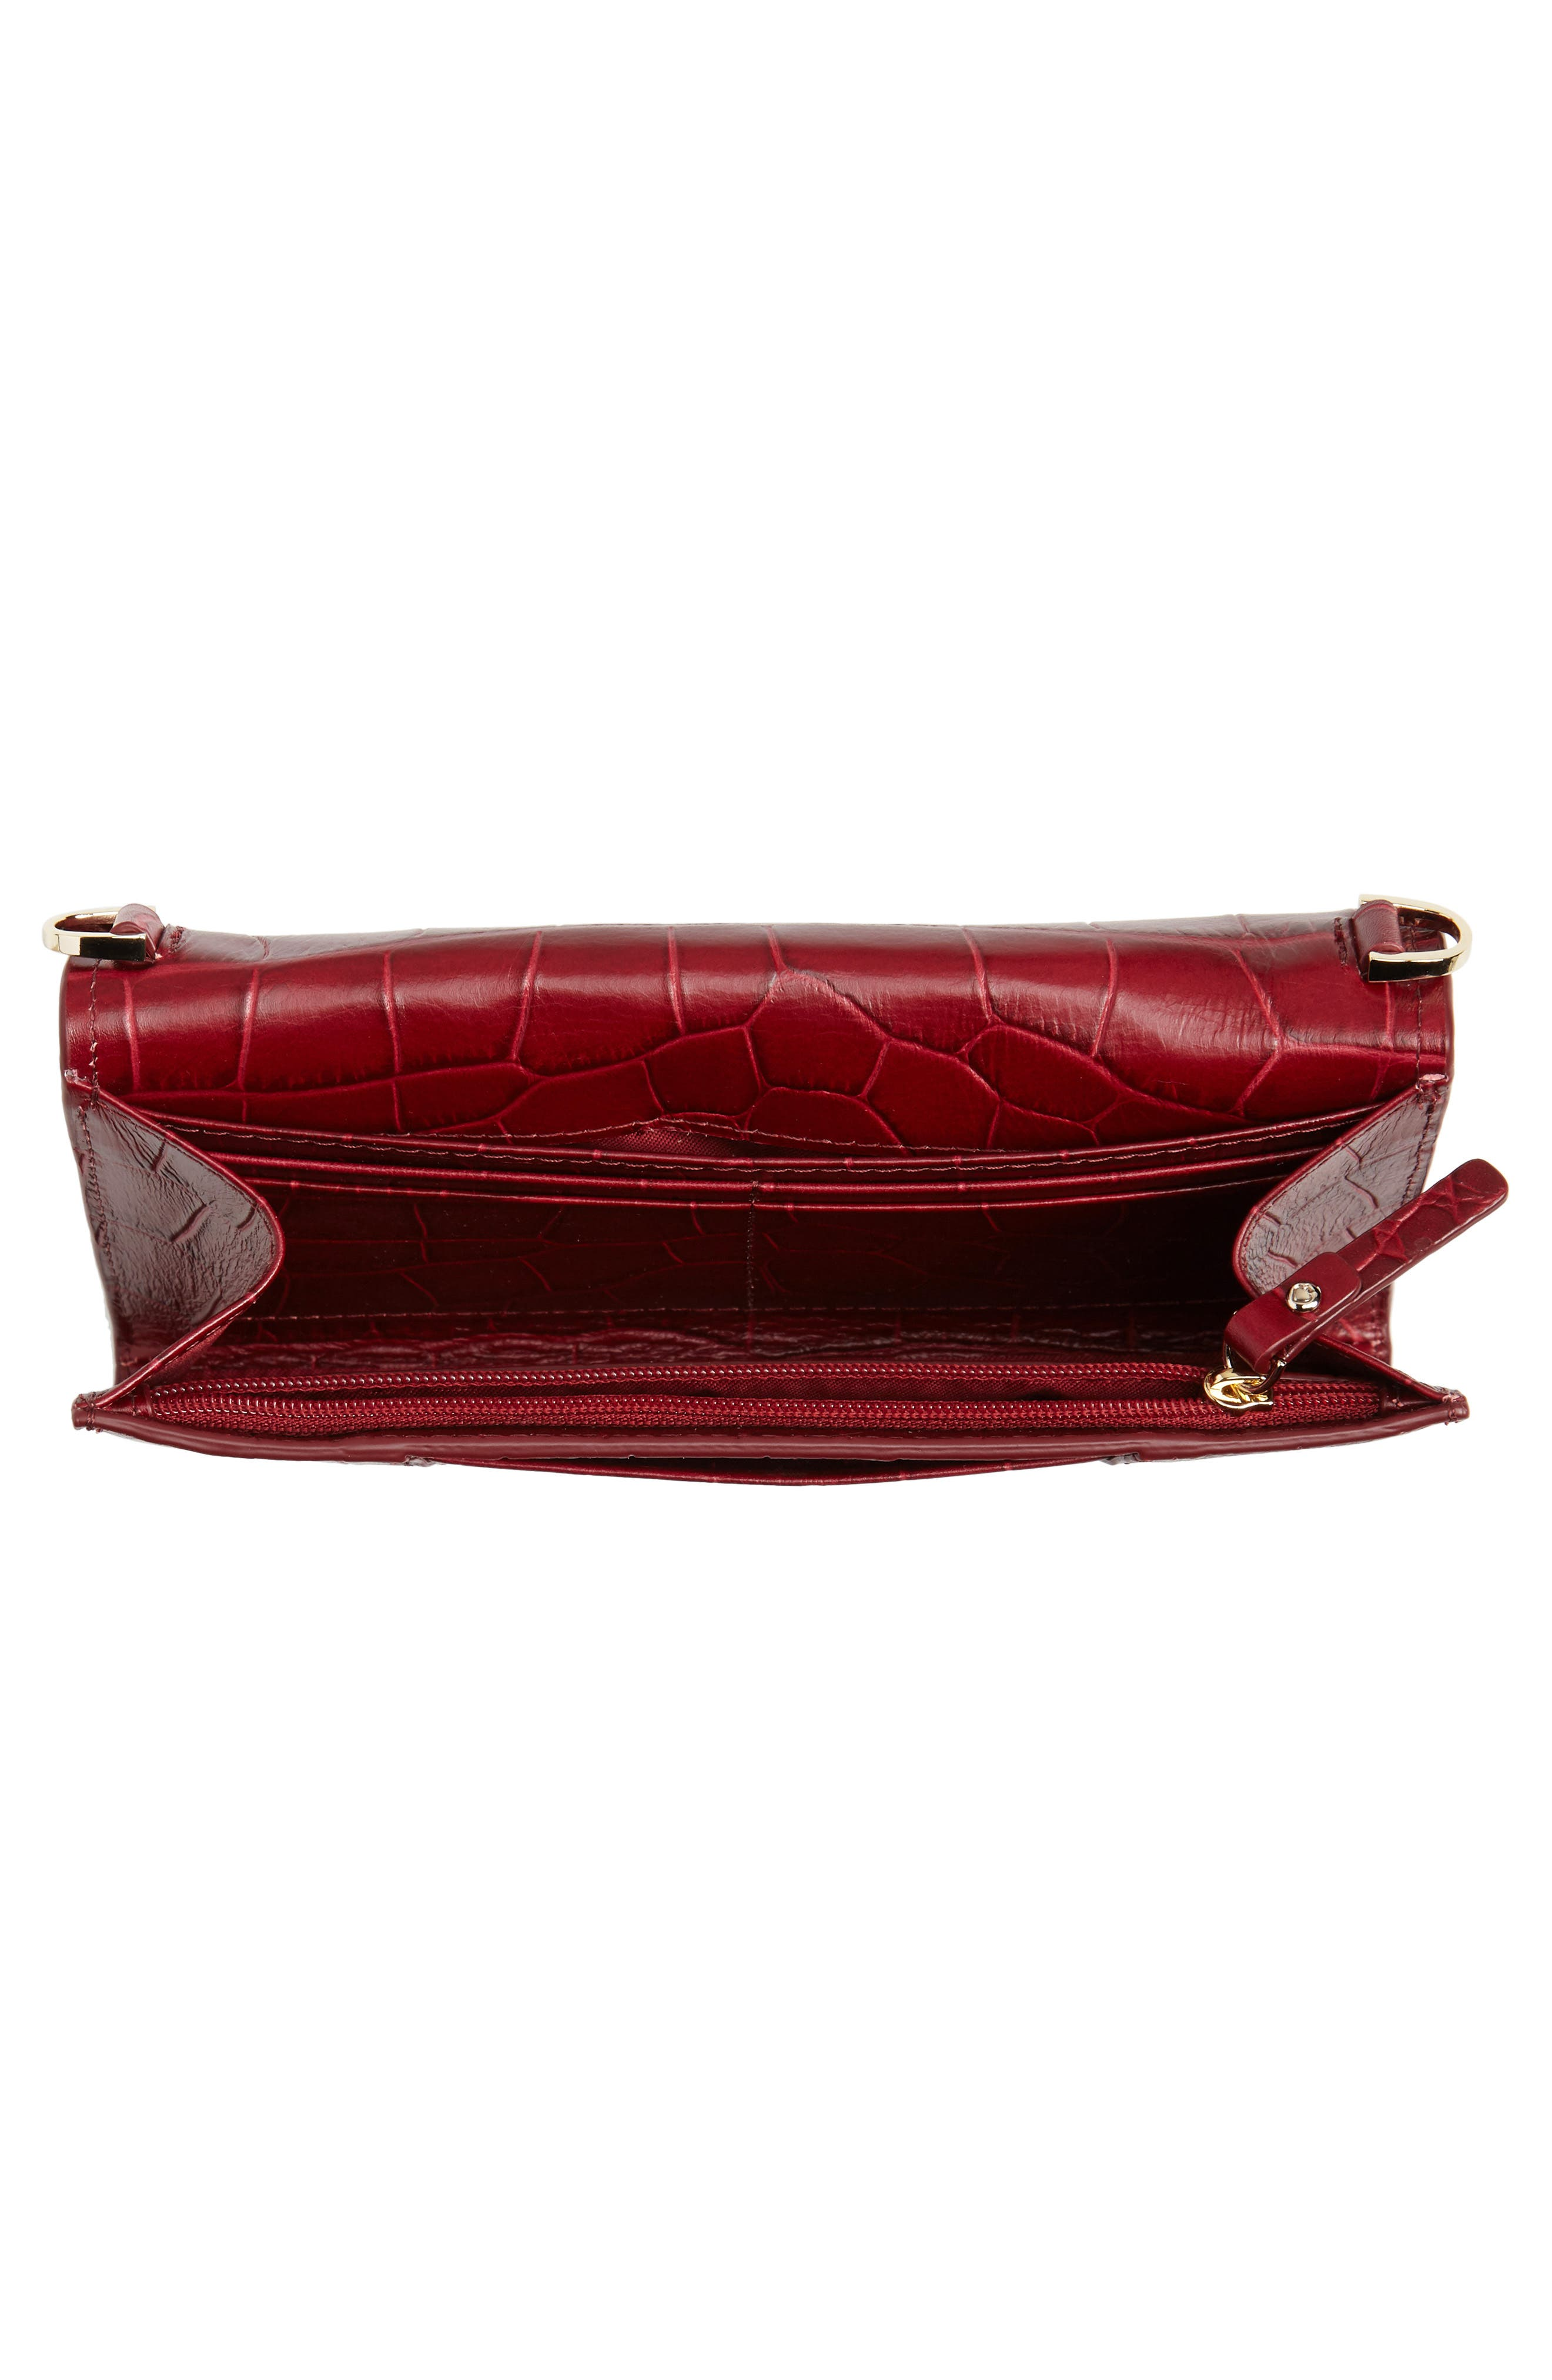 murray street luxe franny leather wallet on a chain,                             Alternate thumbnail 4, color,                             CHILI PEPPER